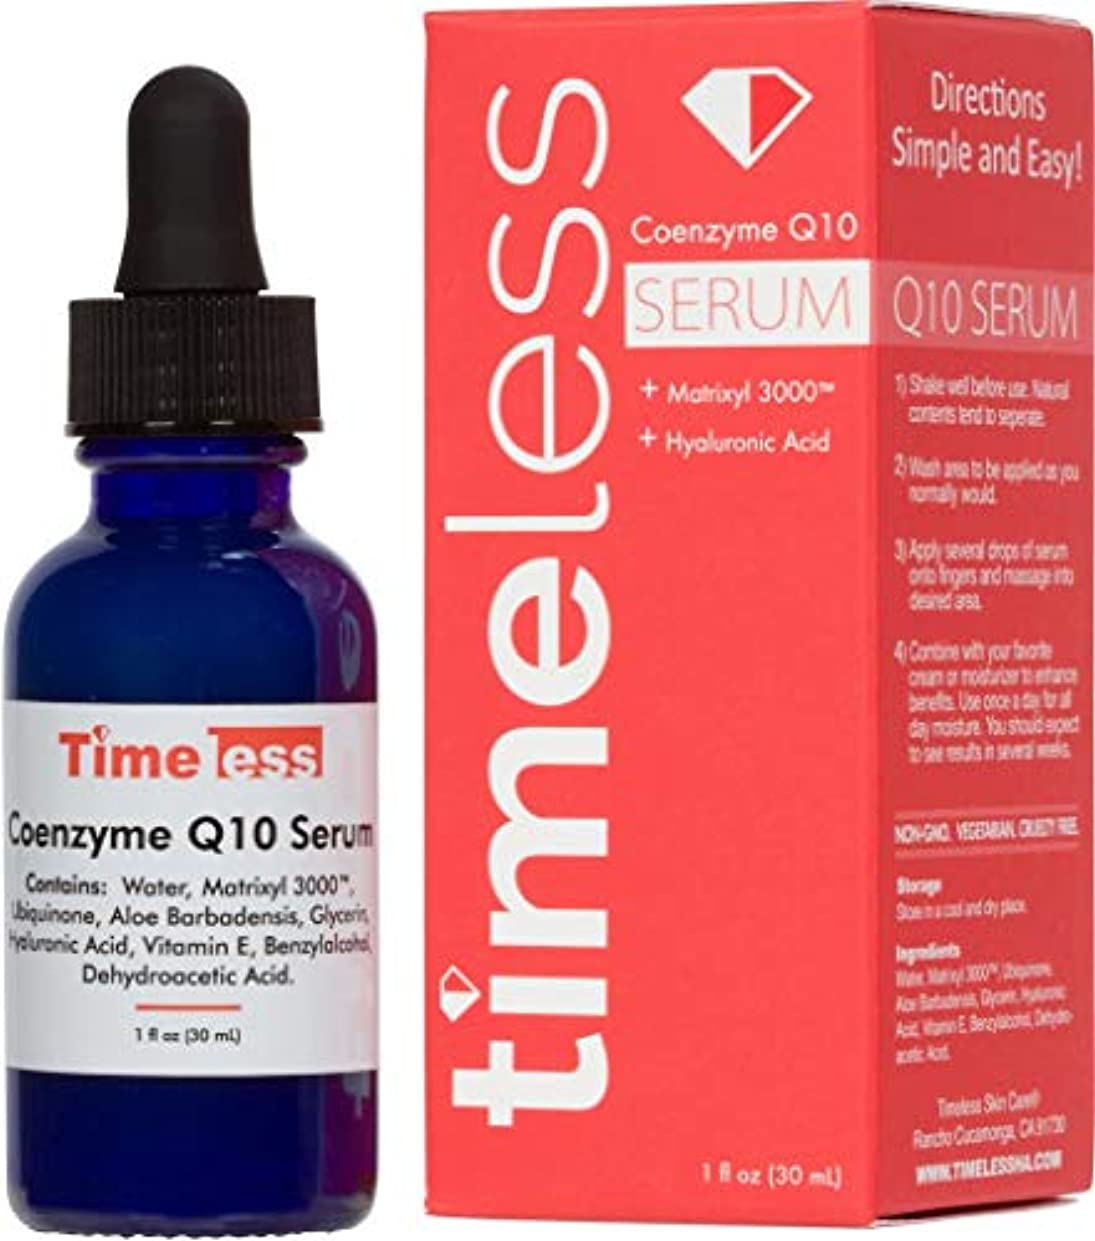 発音する舞い上がる超高層ビルTimeless Skin Care Coenzyme Q10 w/Matrixyl 3000 Serum 1oz / 30ml - Sealed & Fresh Guaranteed! Dispatch from the...